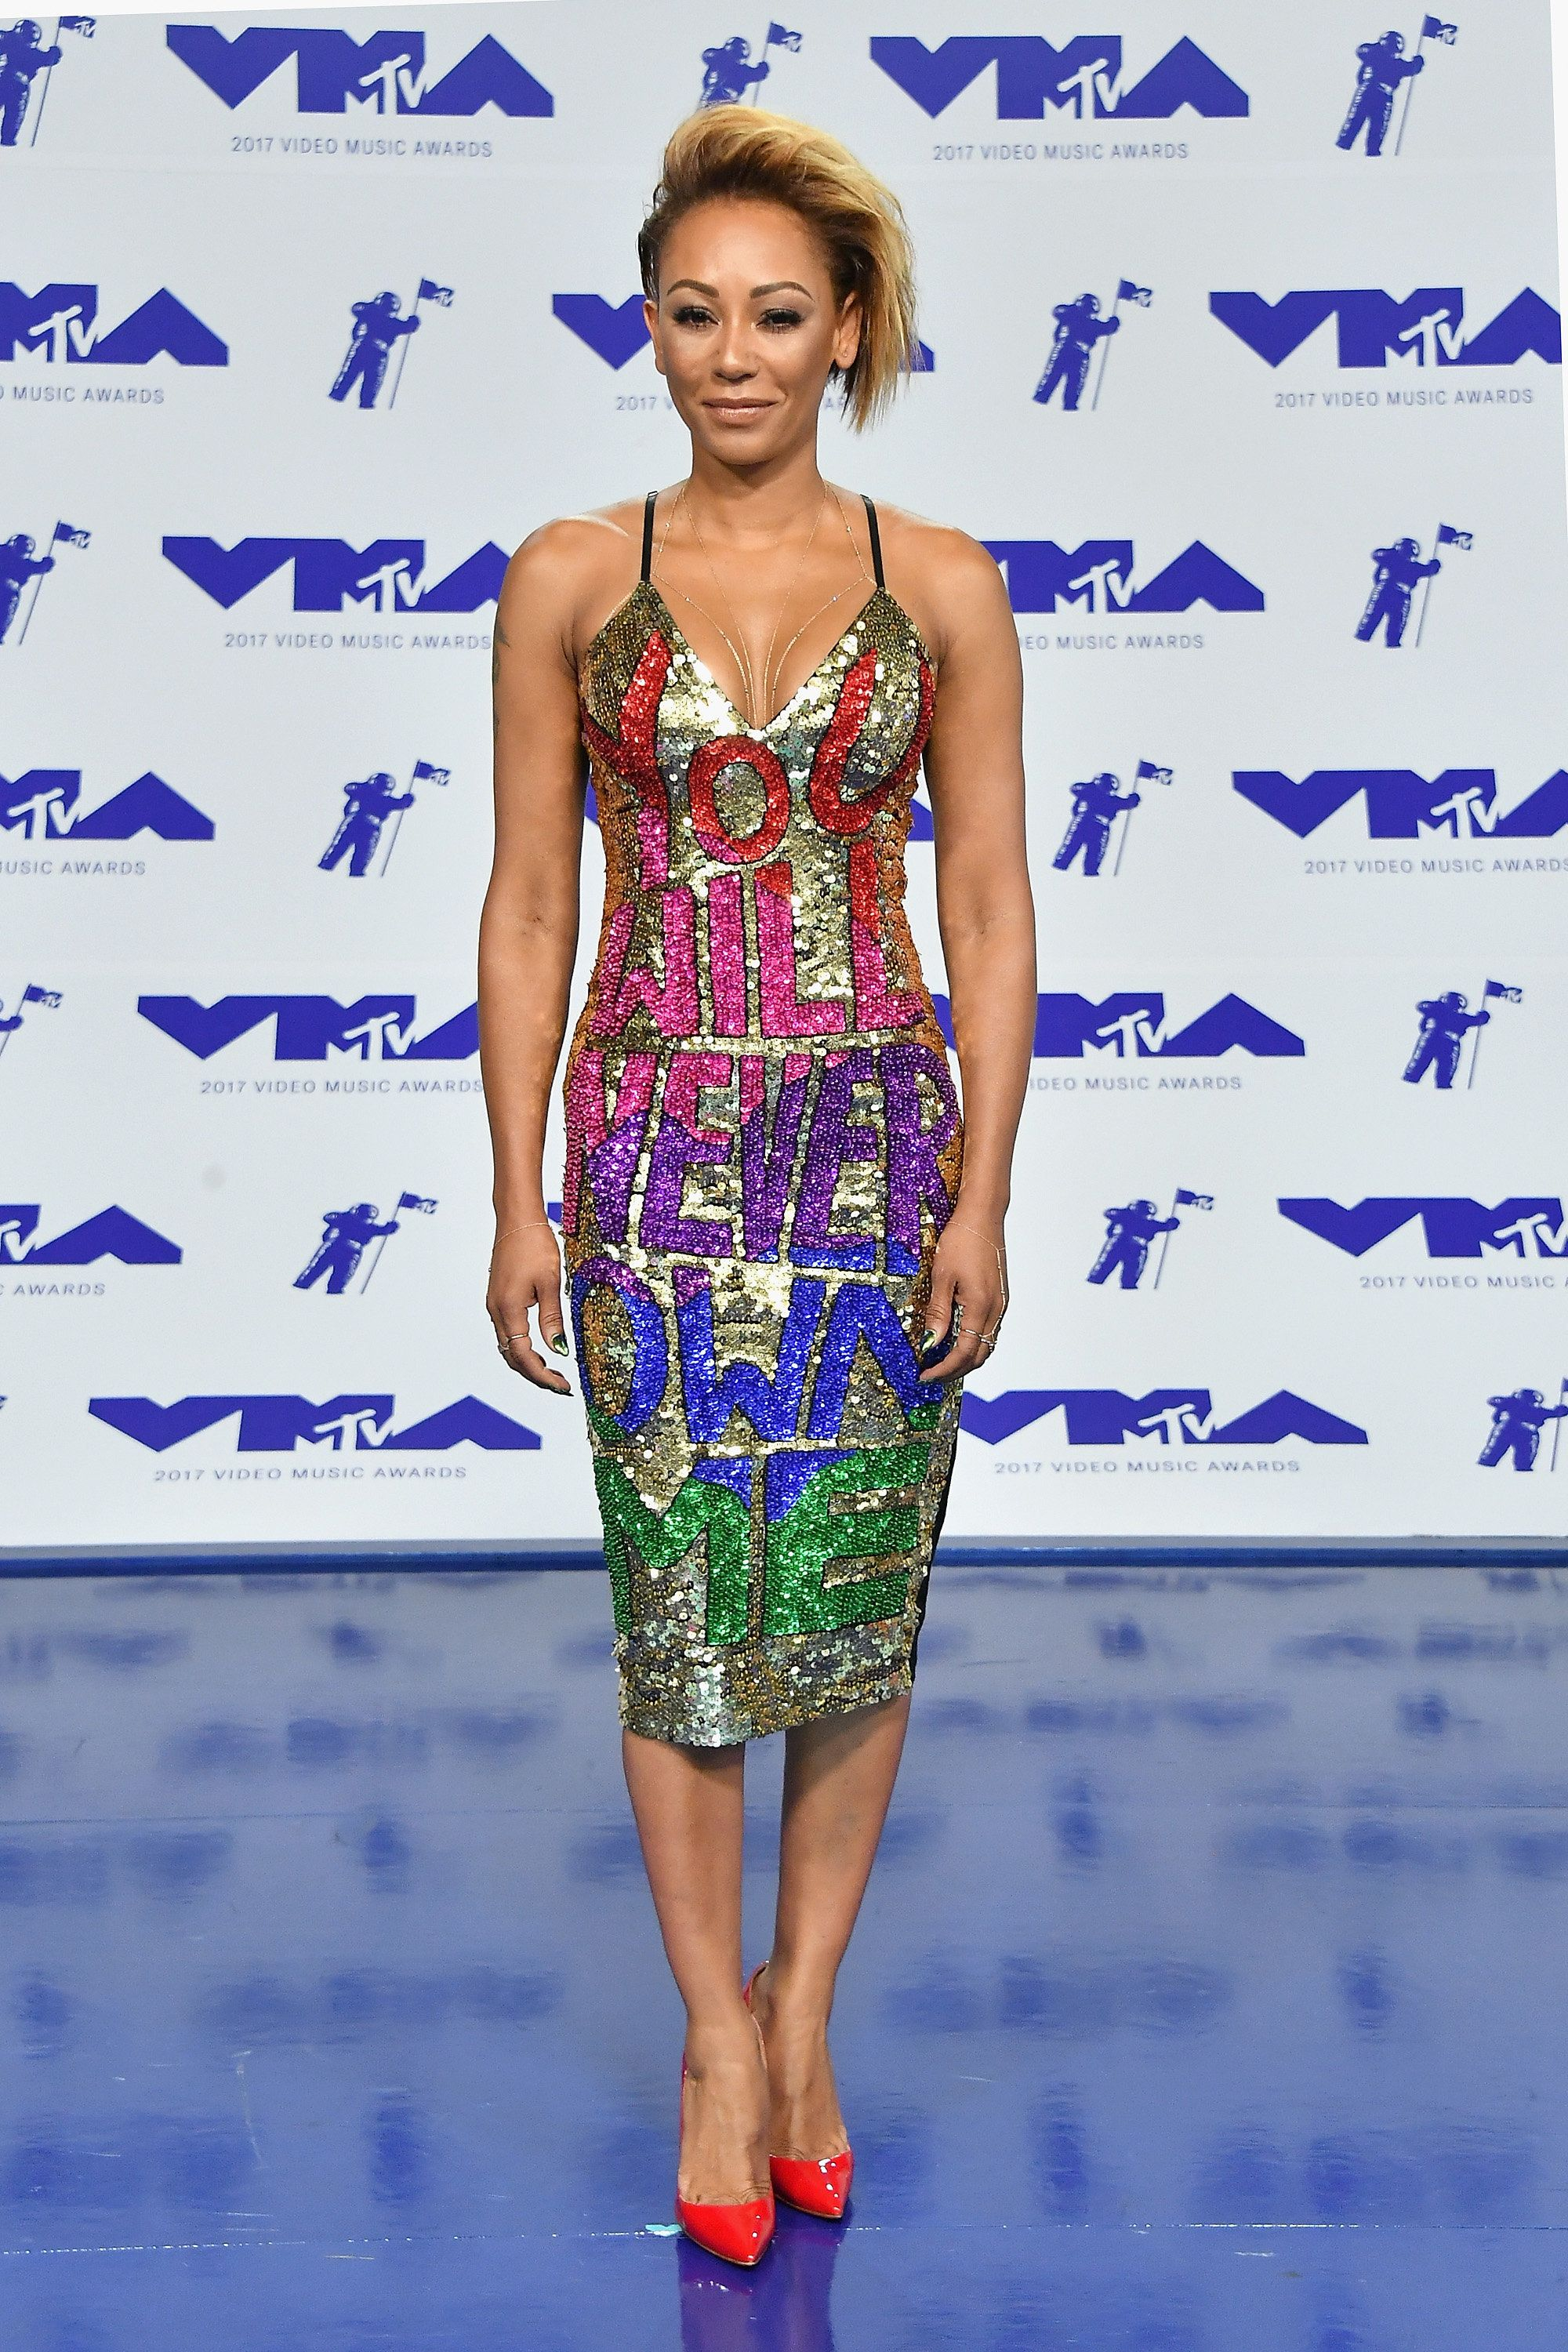 Mel B Makes Very Public Statement With Her VMAs 'Revenge Dress'